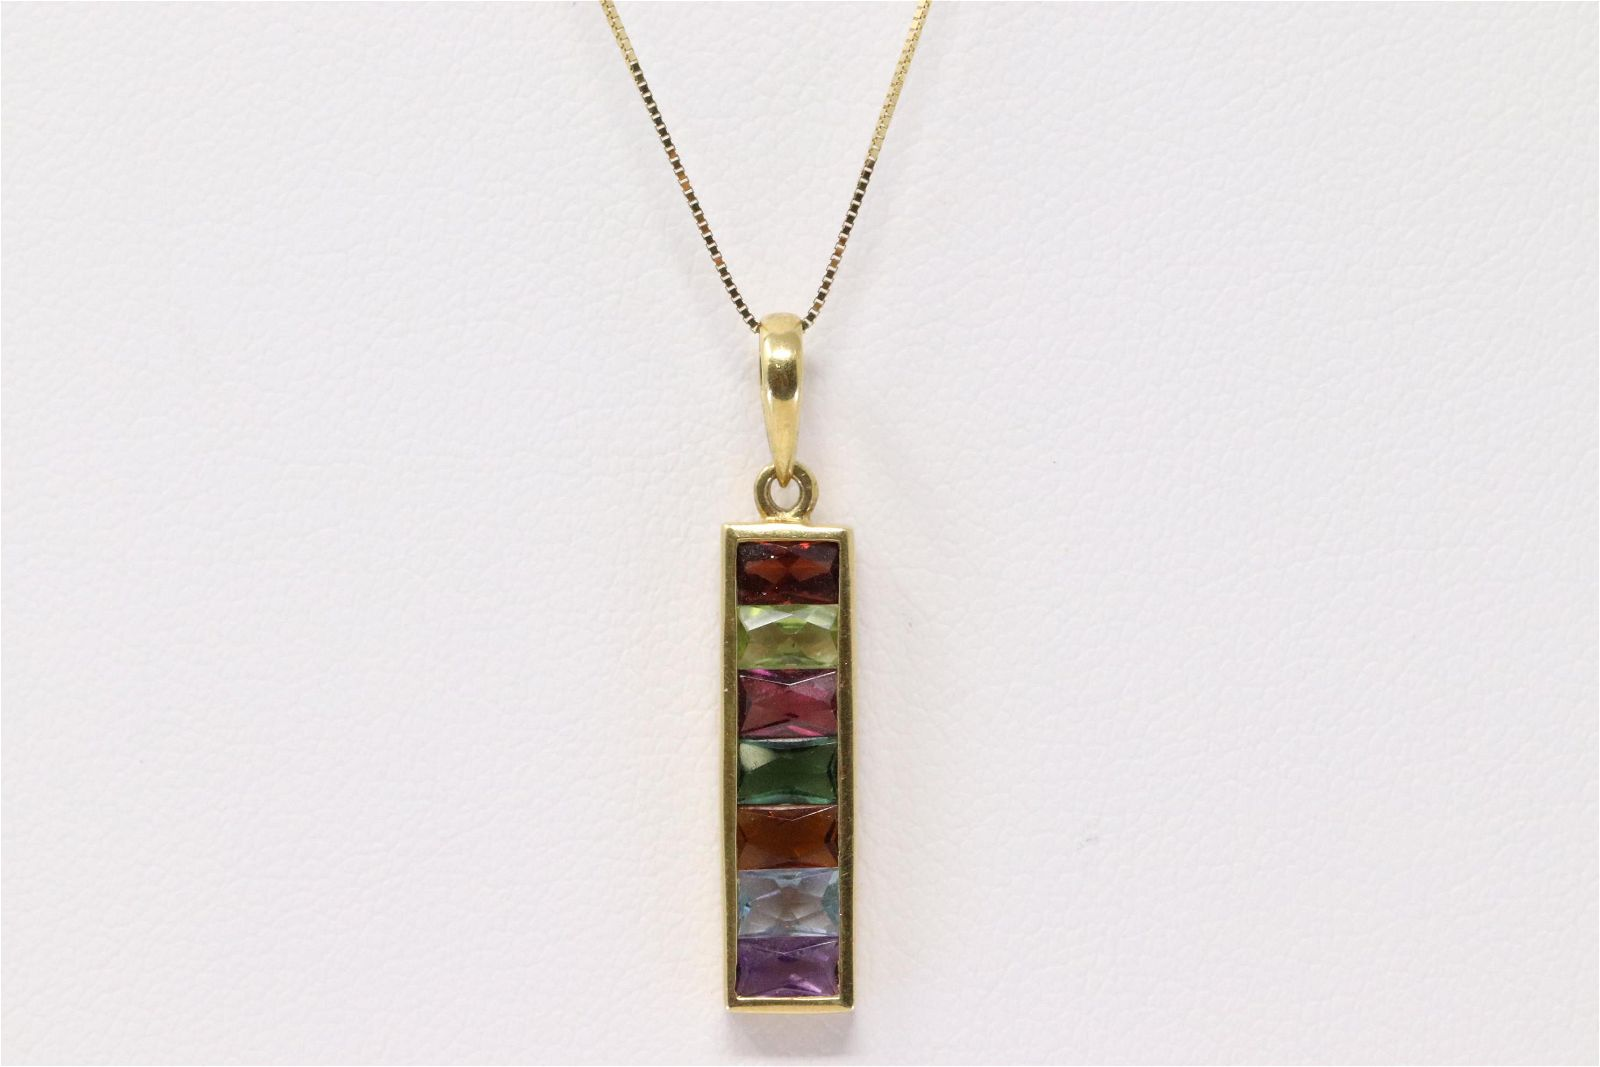 14Kt Yellow Gold Multi-Color Pendant.